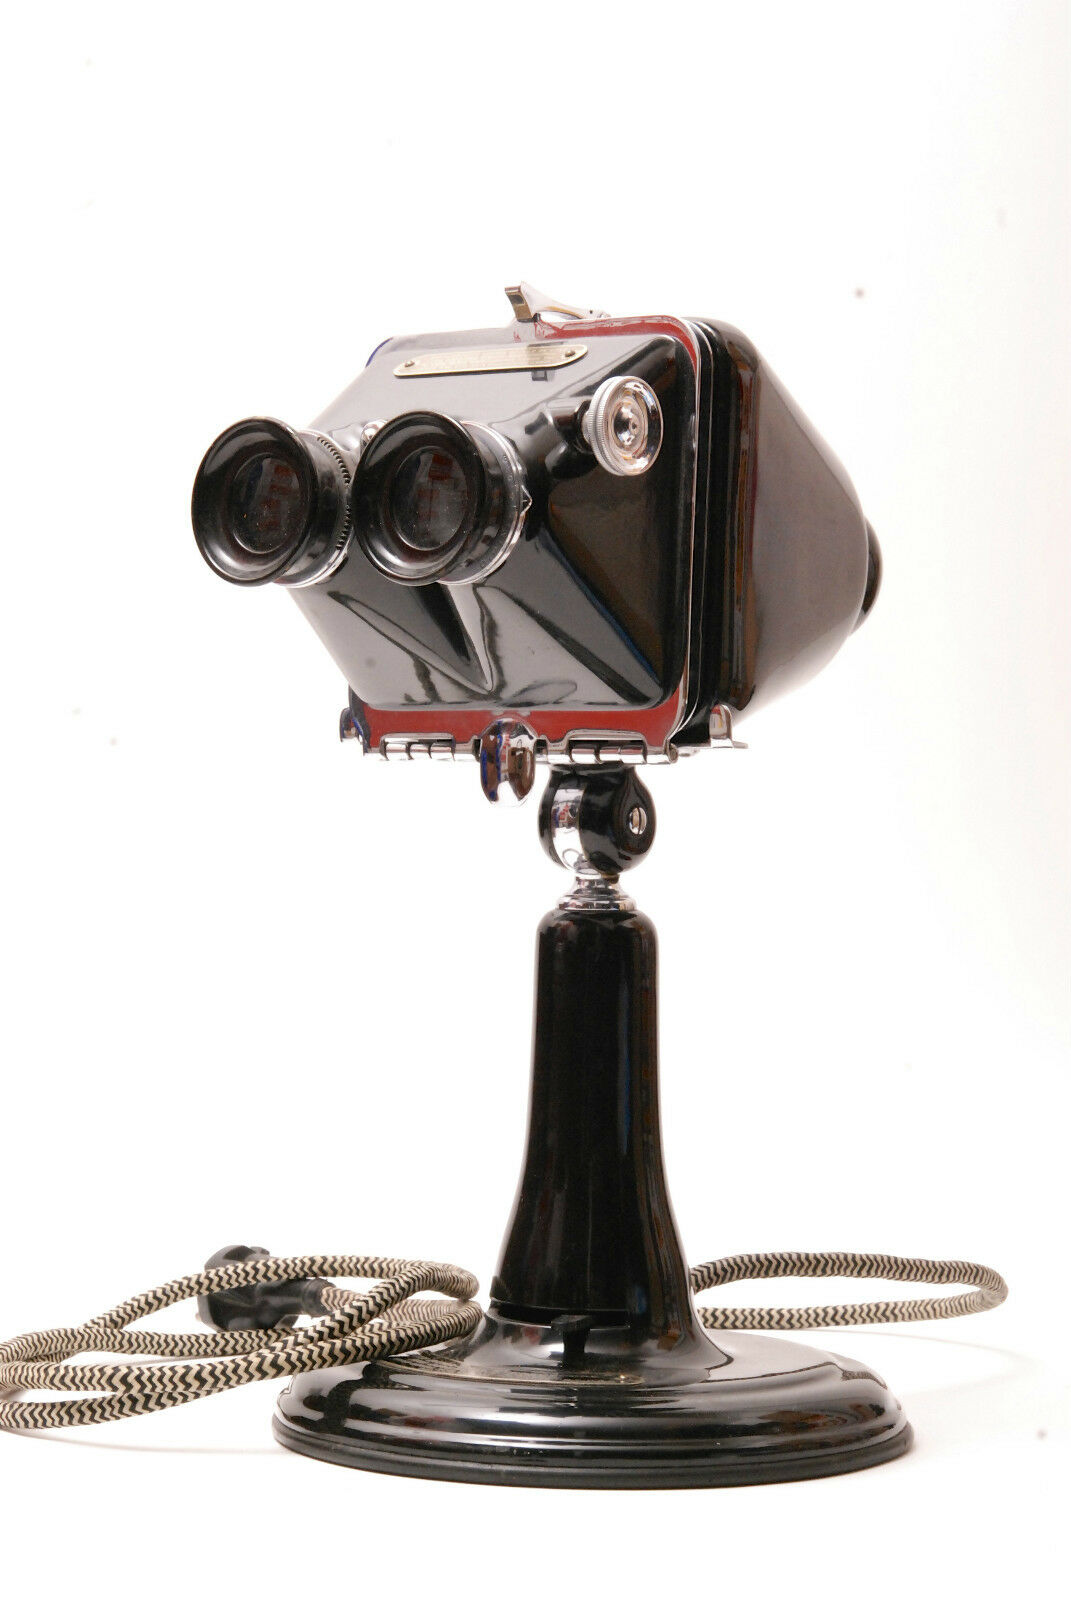 Ritter Intraoral stereoscope and diagnosis dental lamp